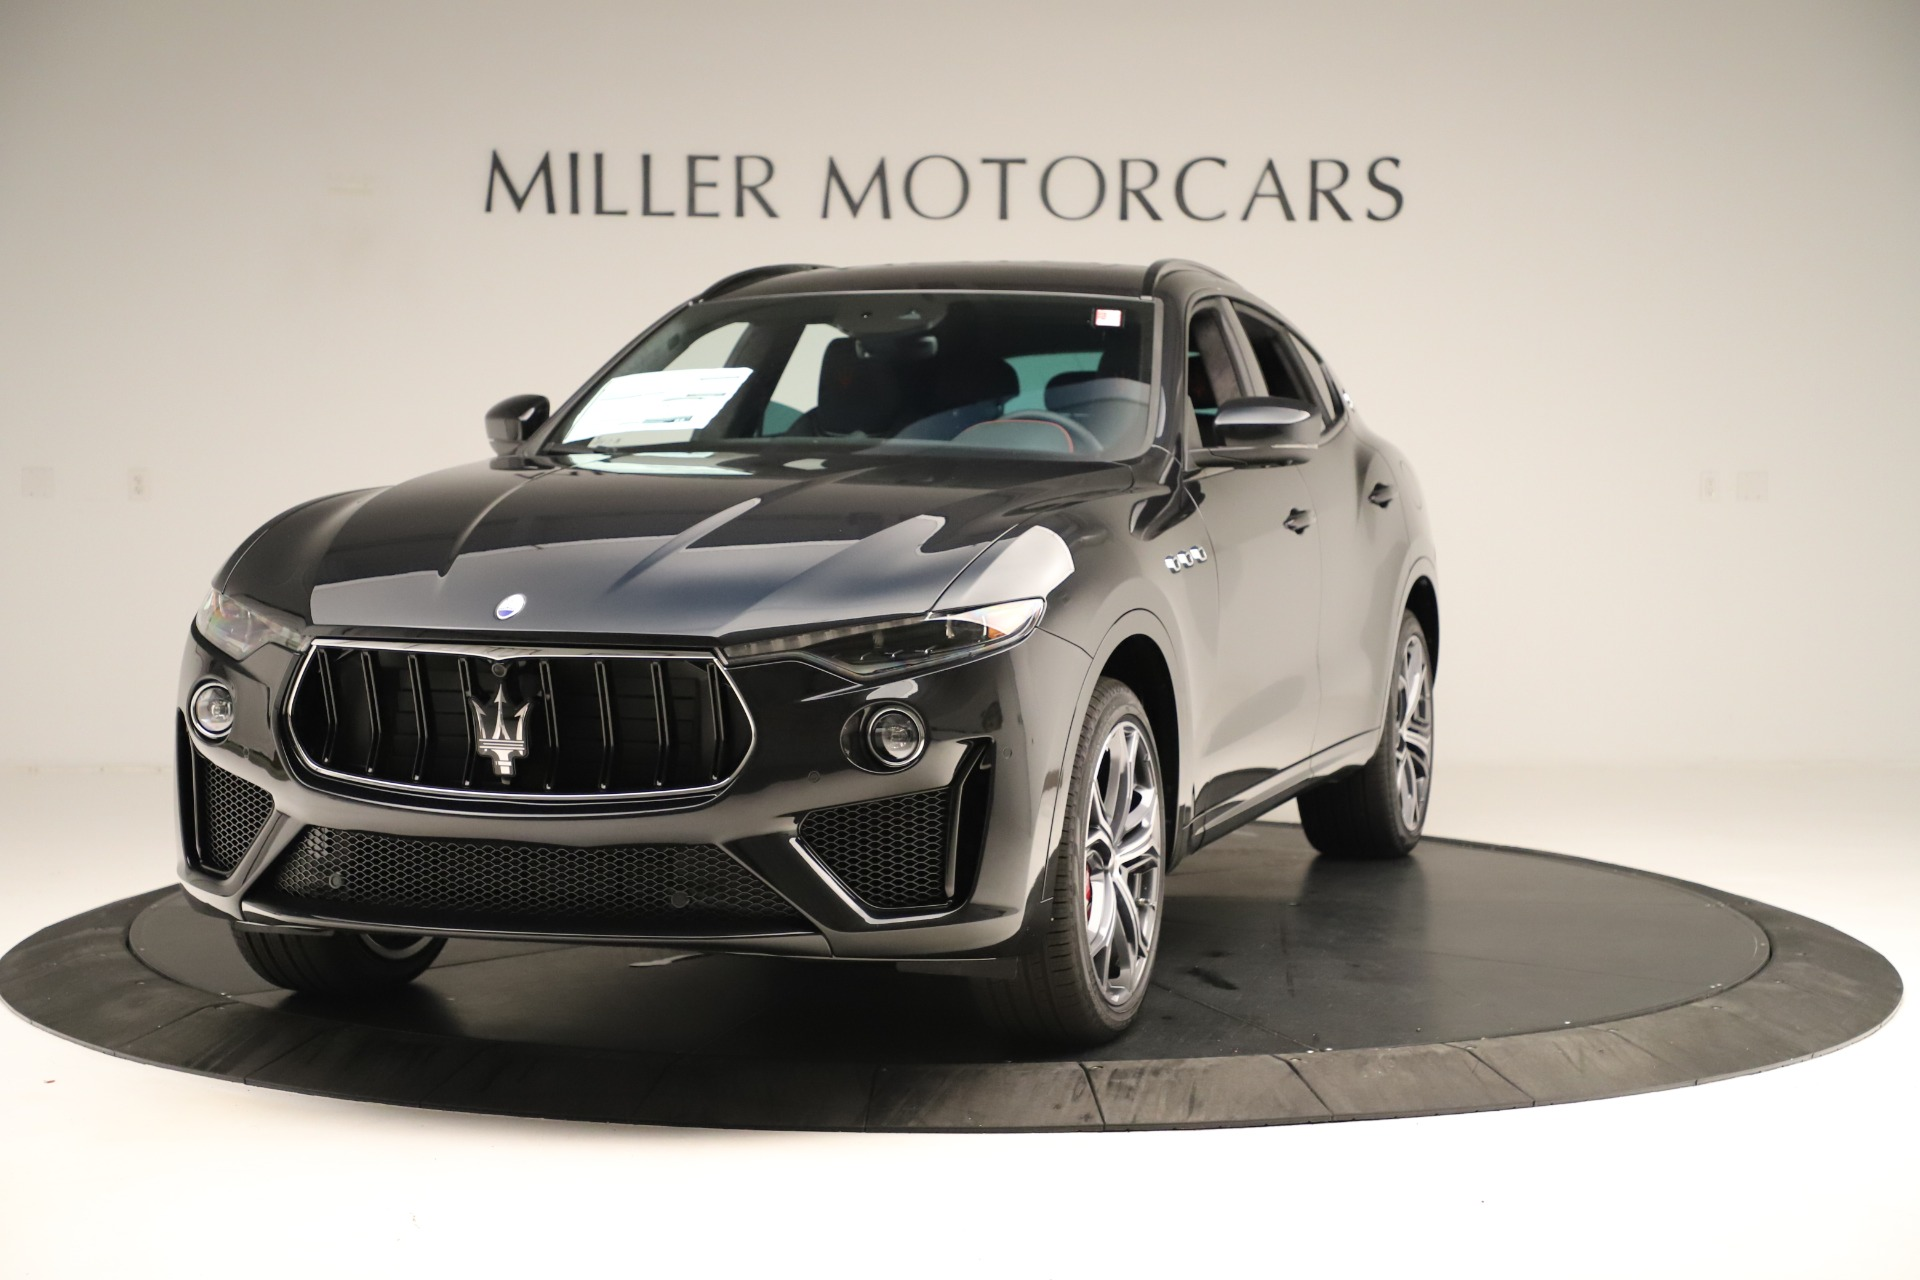 New 2019 Maserati Levante GTS for sale $134,005 at McLaren Greenwich in Greenwich CT 06830 1